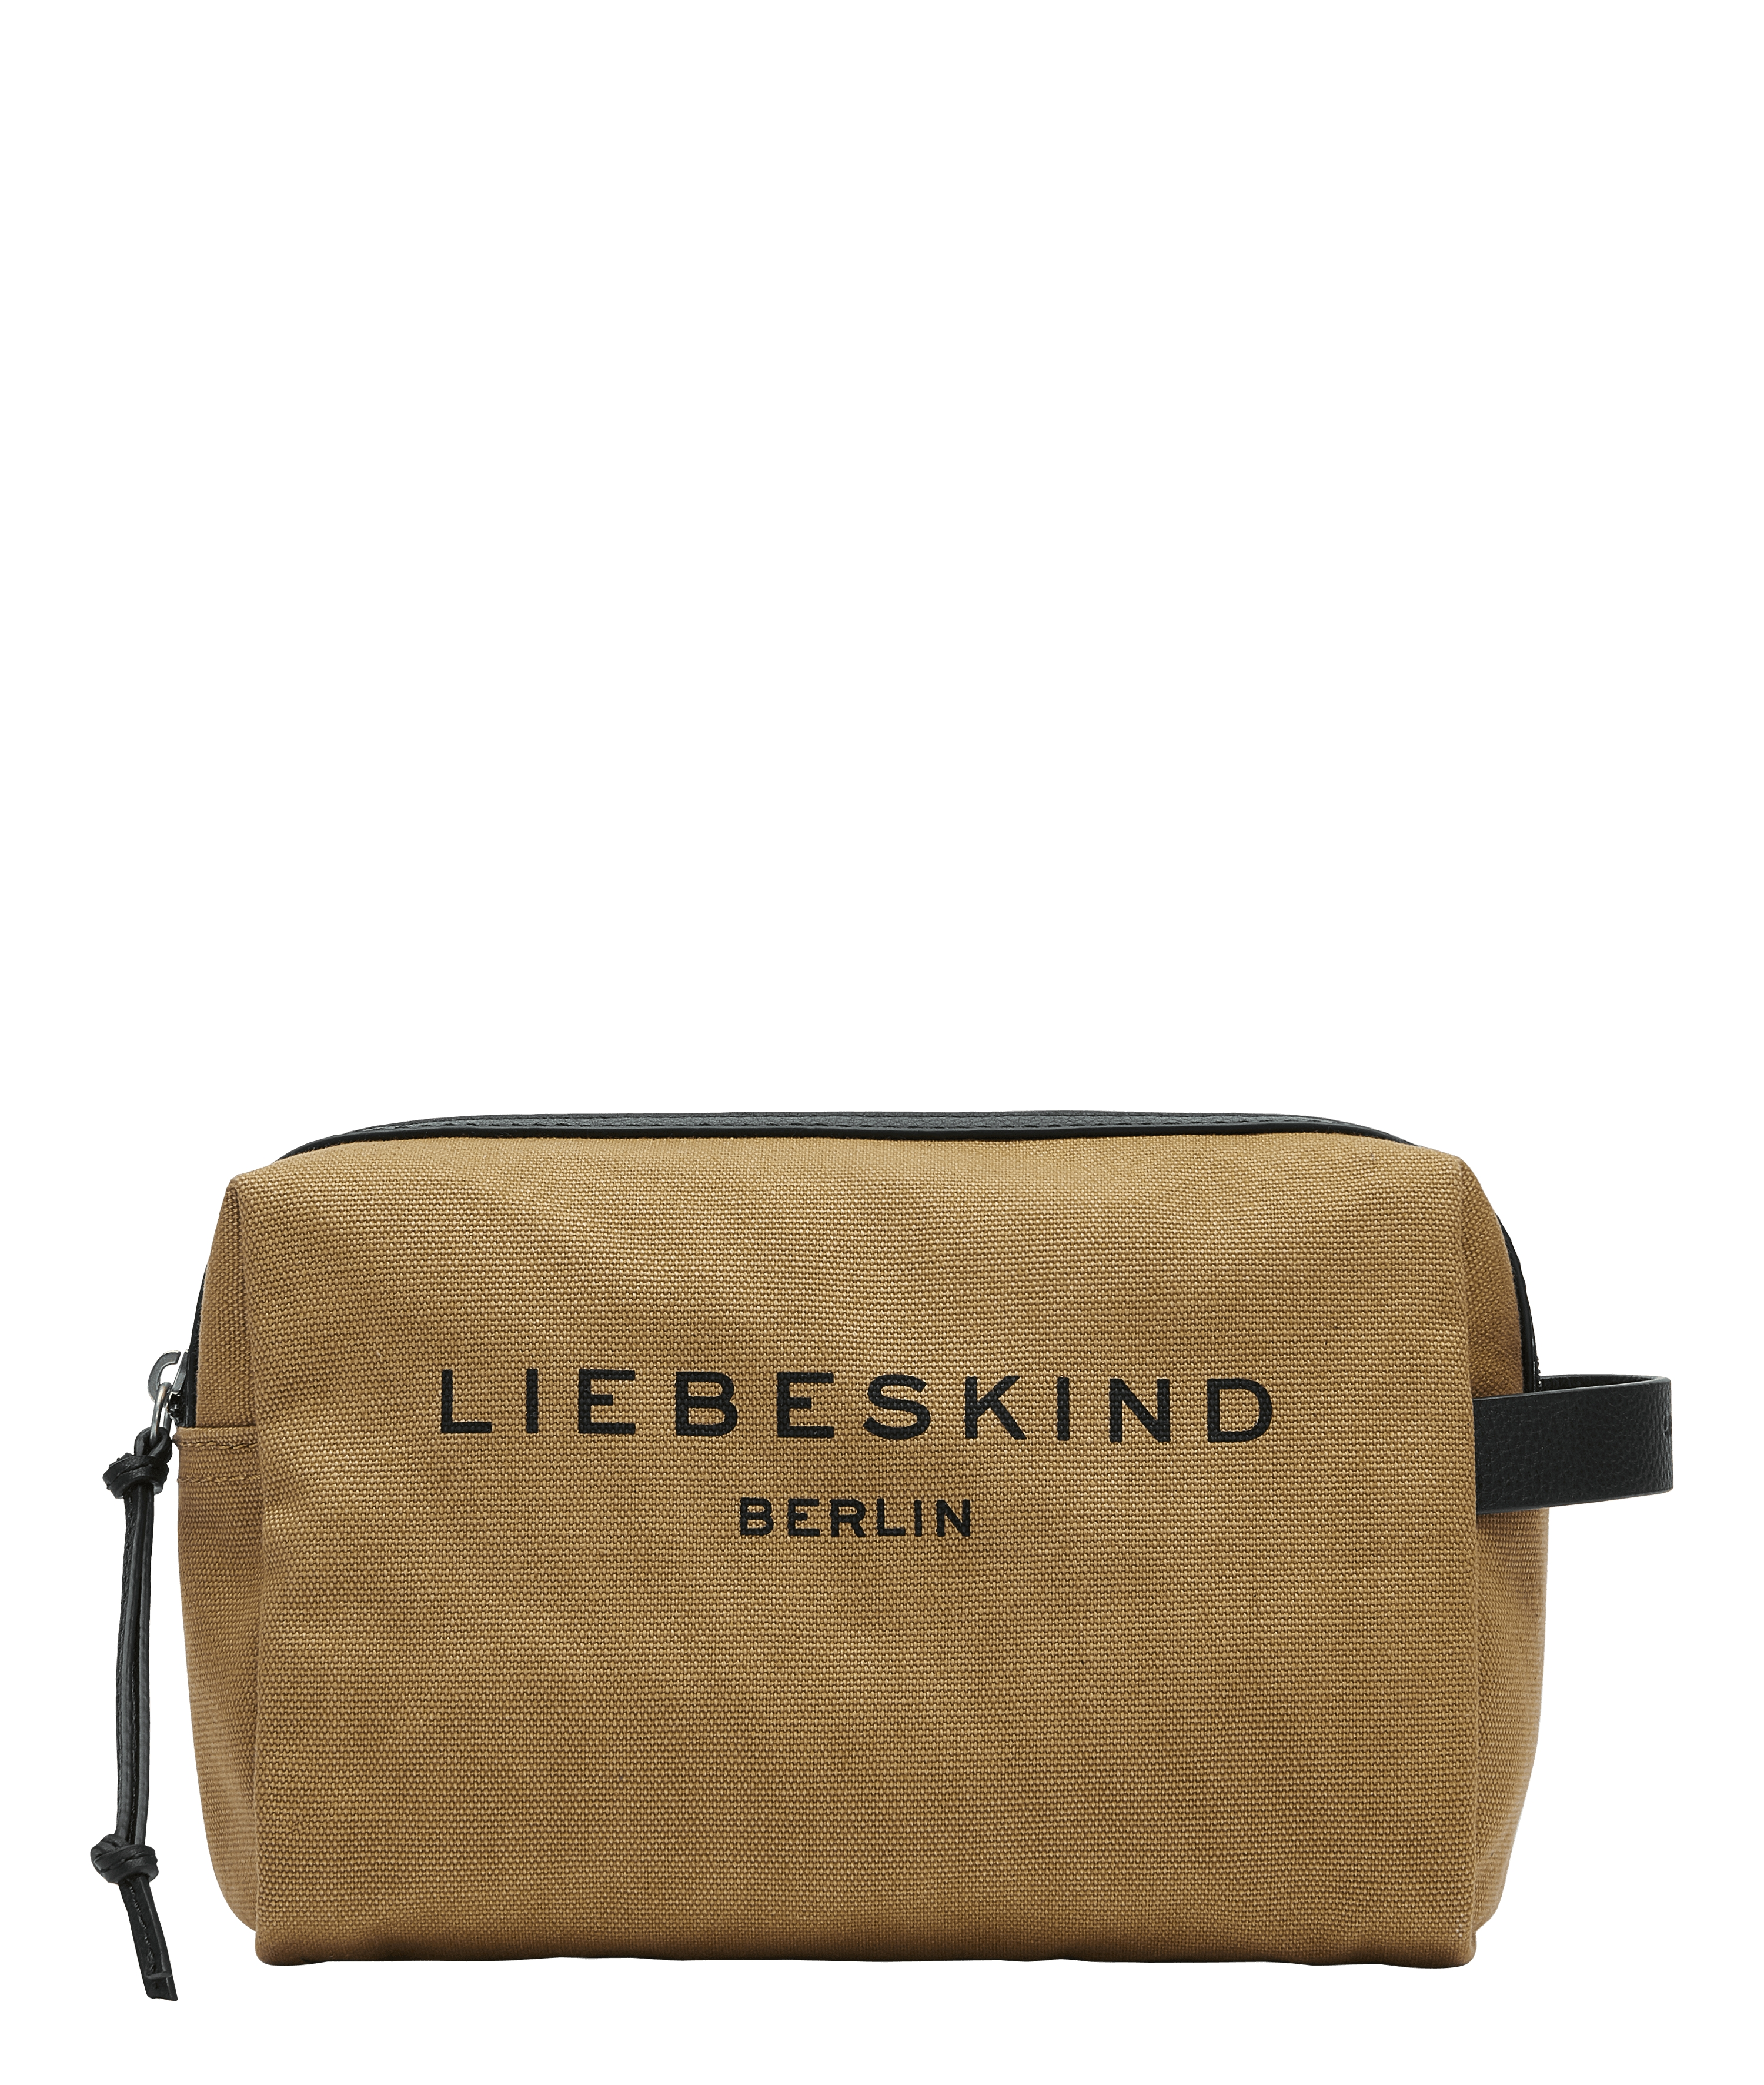 Liebeskind-Berlin Gray Cosmetic Pouch M